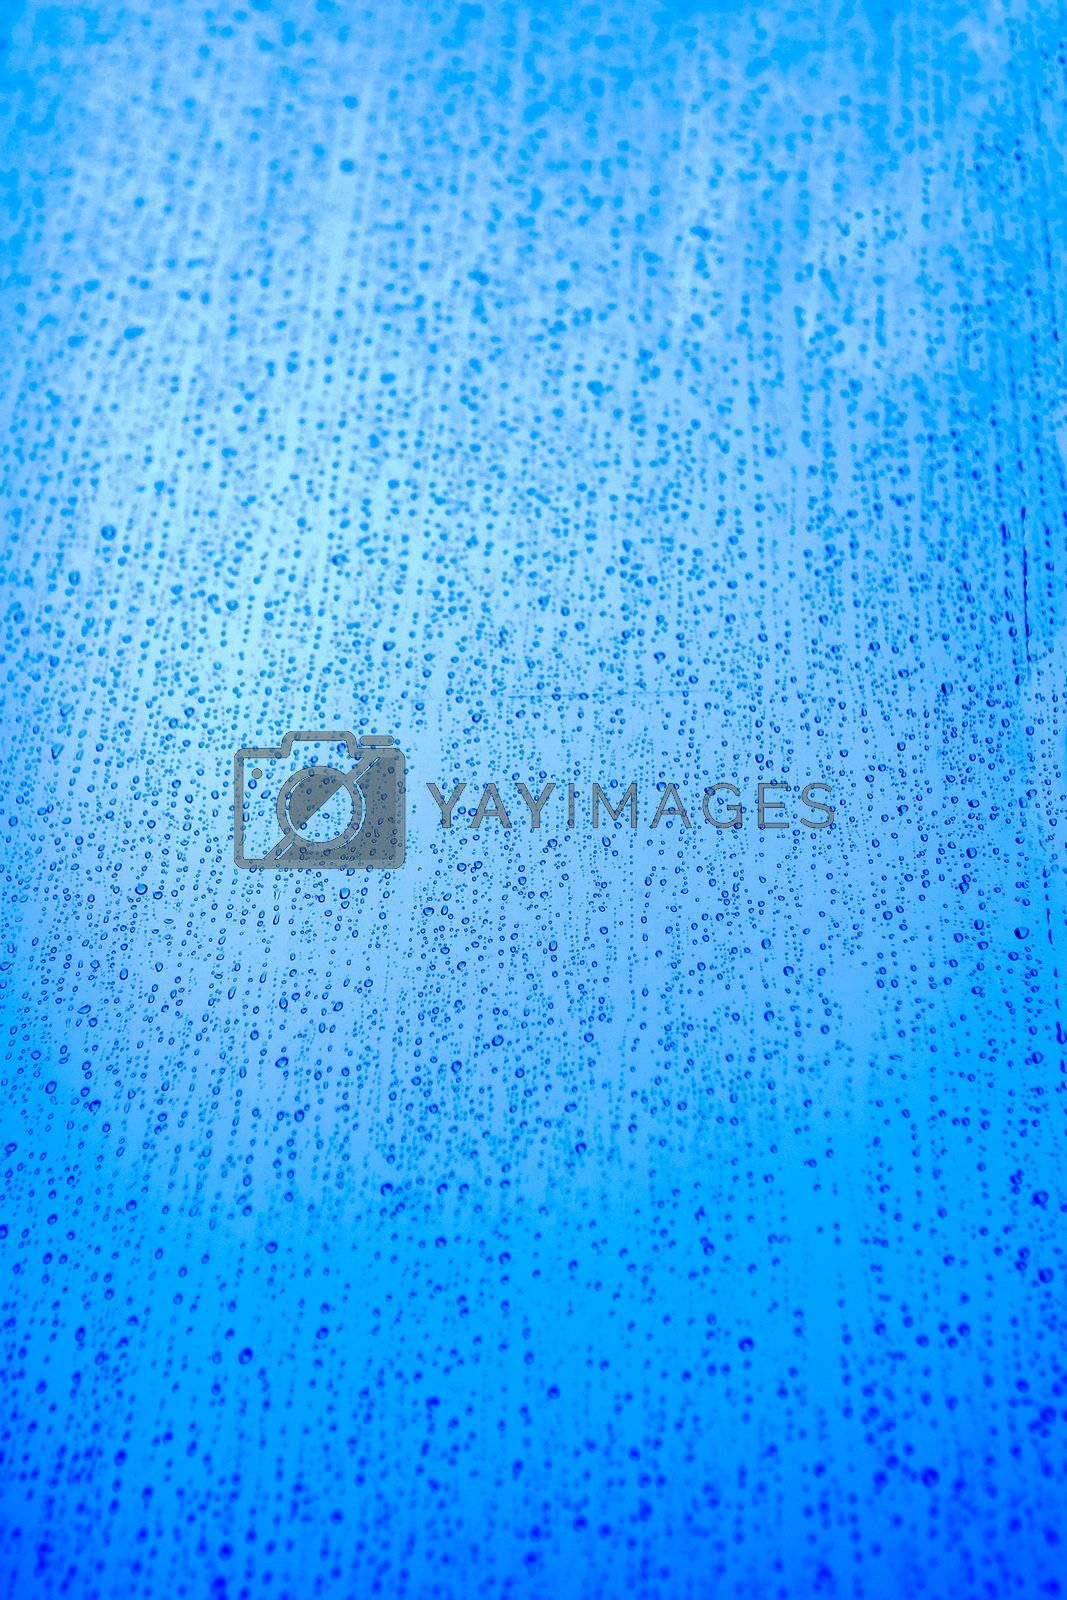 Blue rain background texture image with drops running